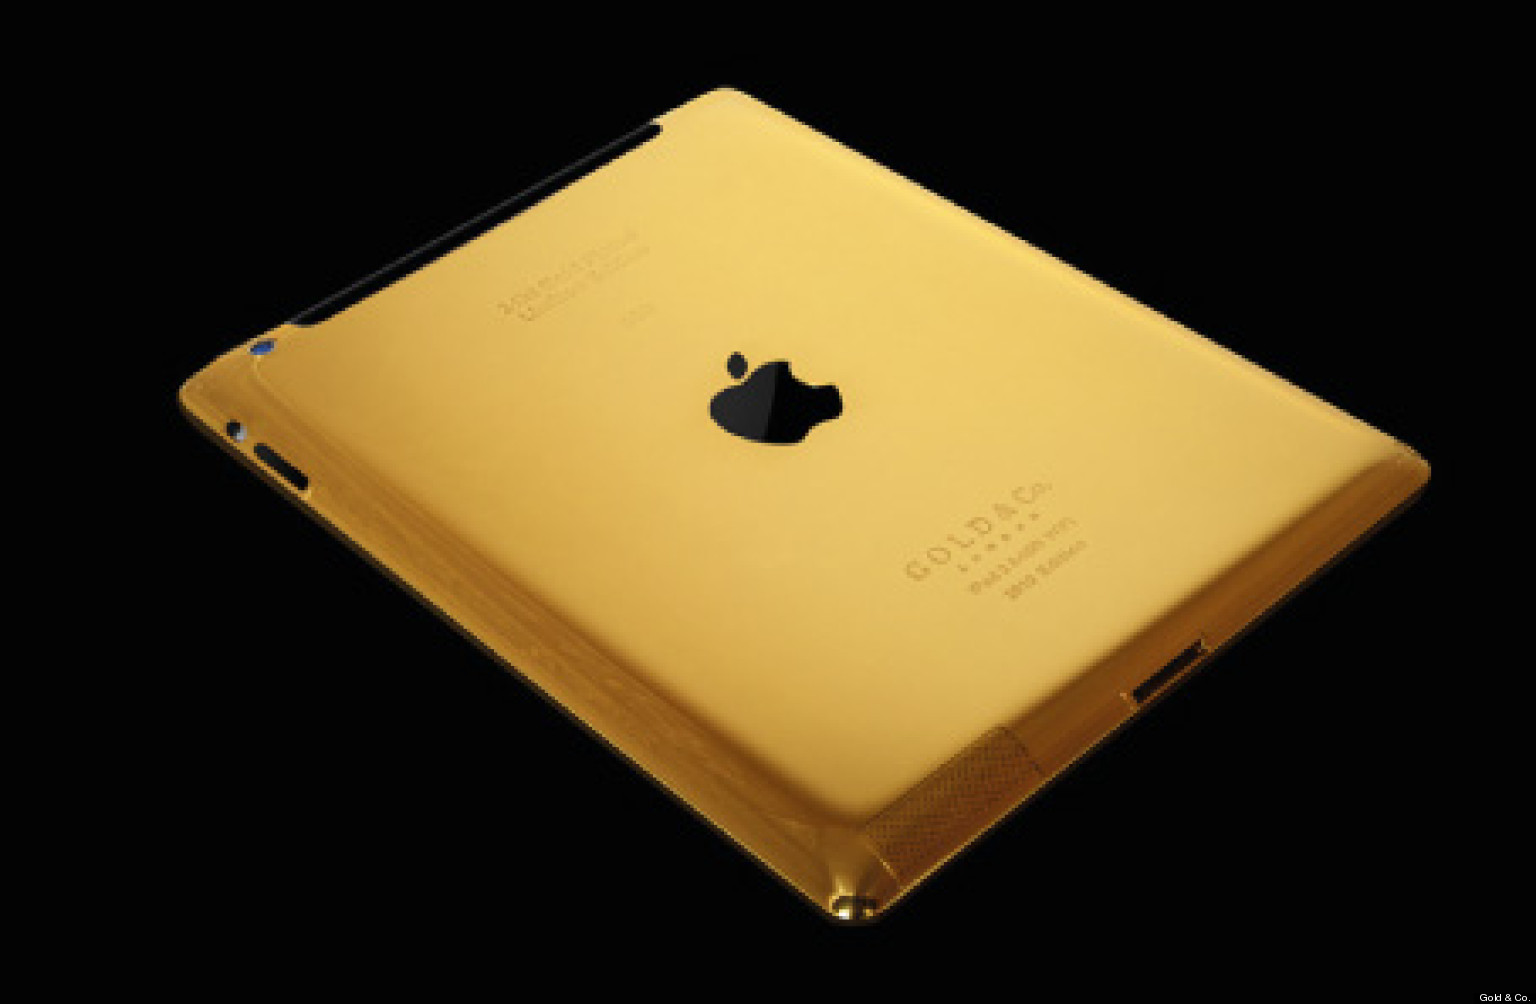 luxury life design burj al arab adds 24 carat gold ipad